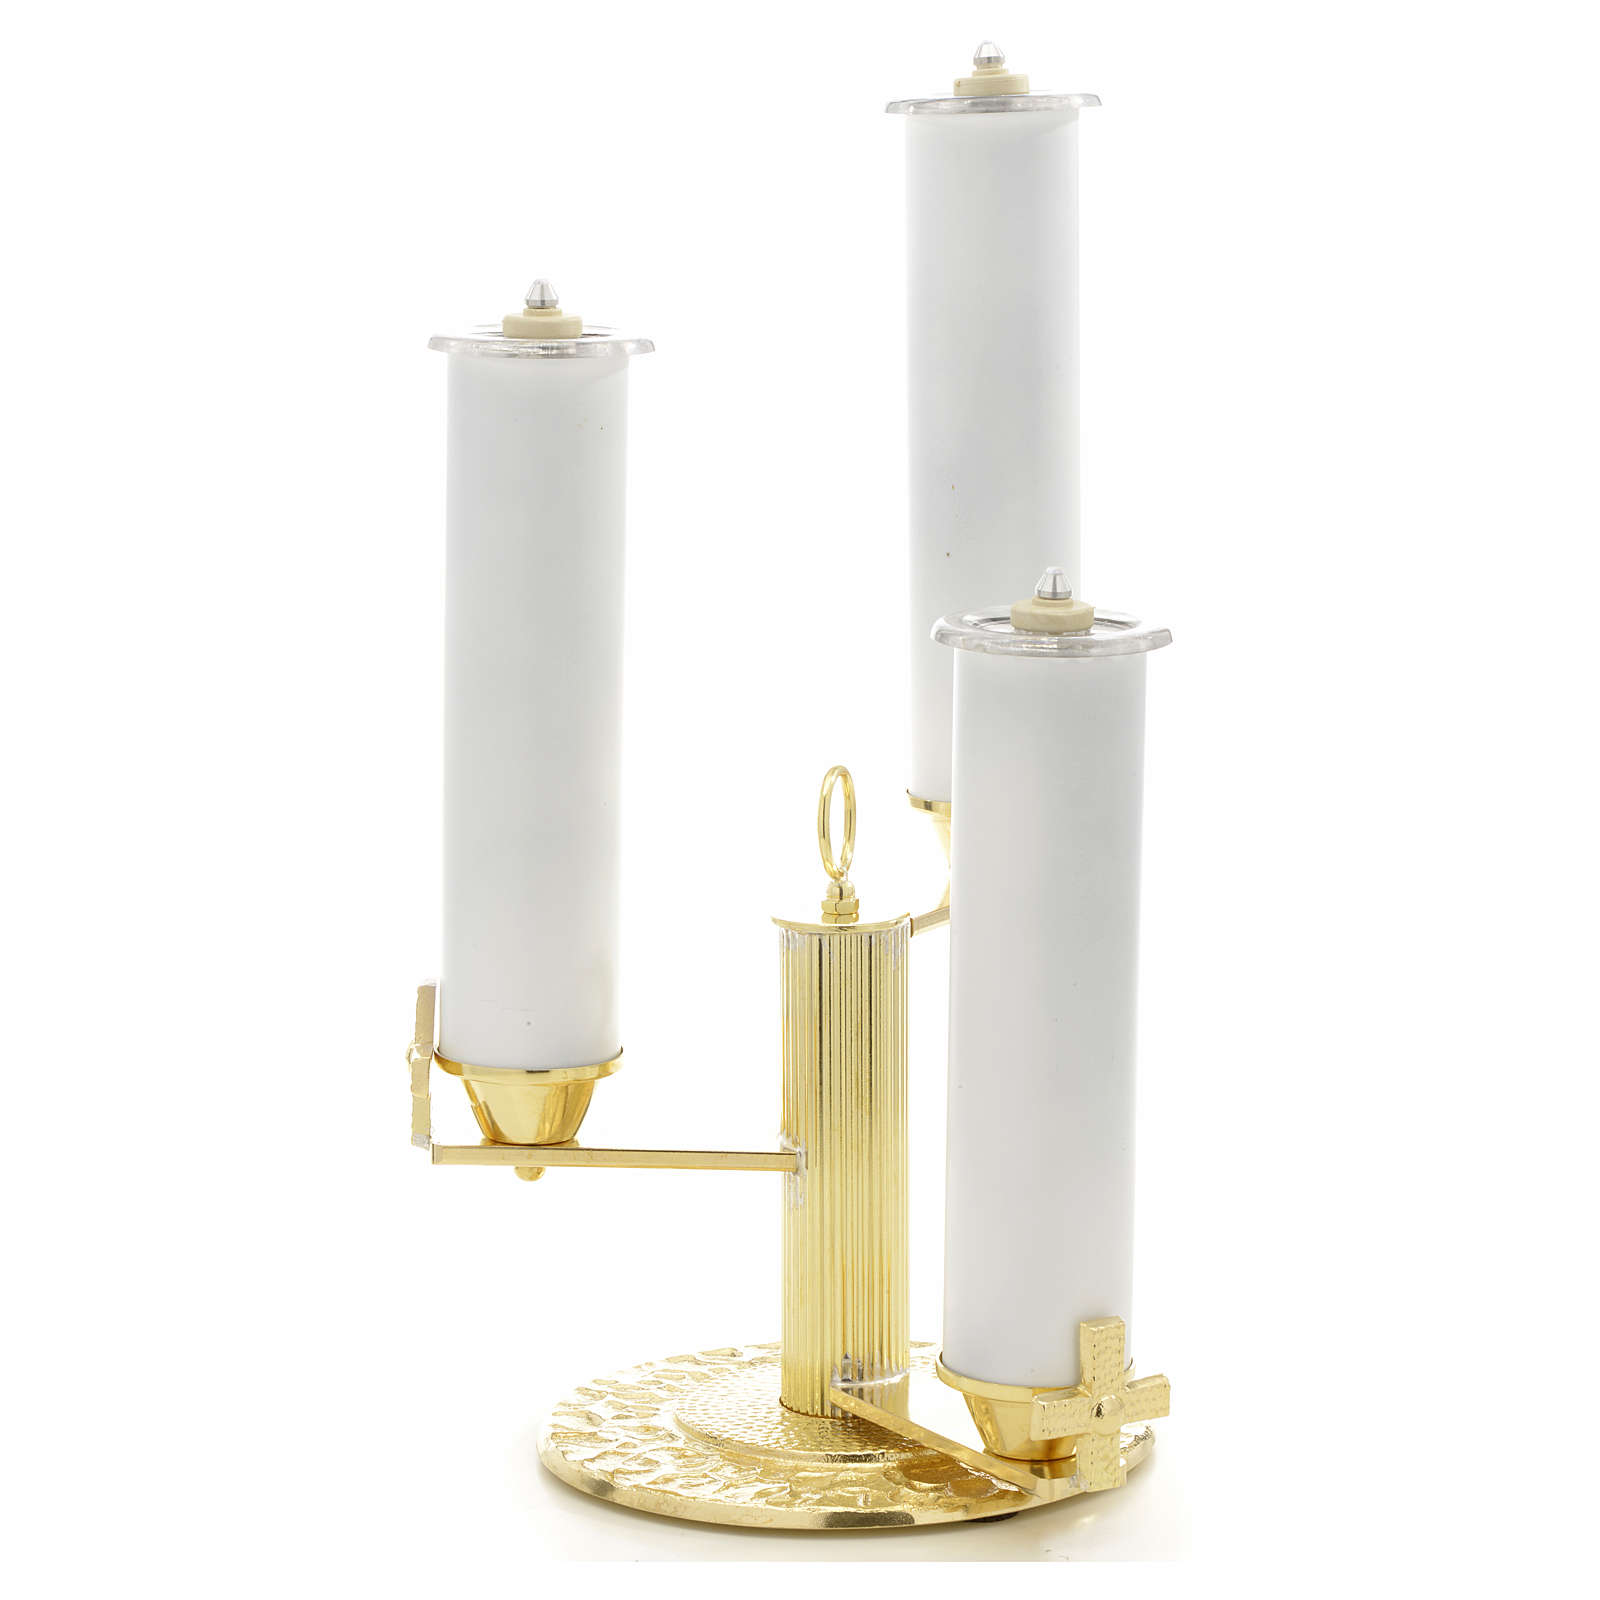 Candlestick with 3 flames in gold-plated bronze 4